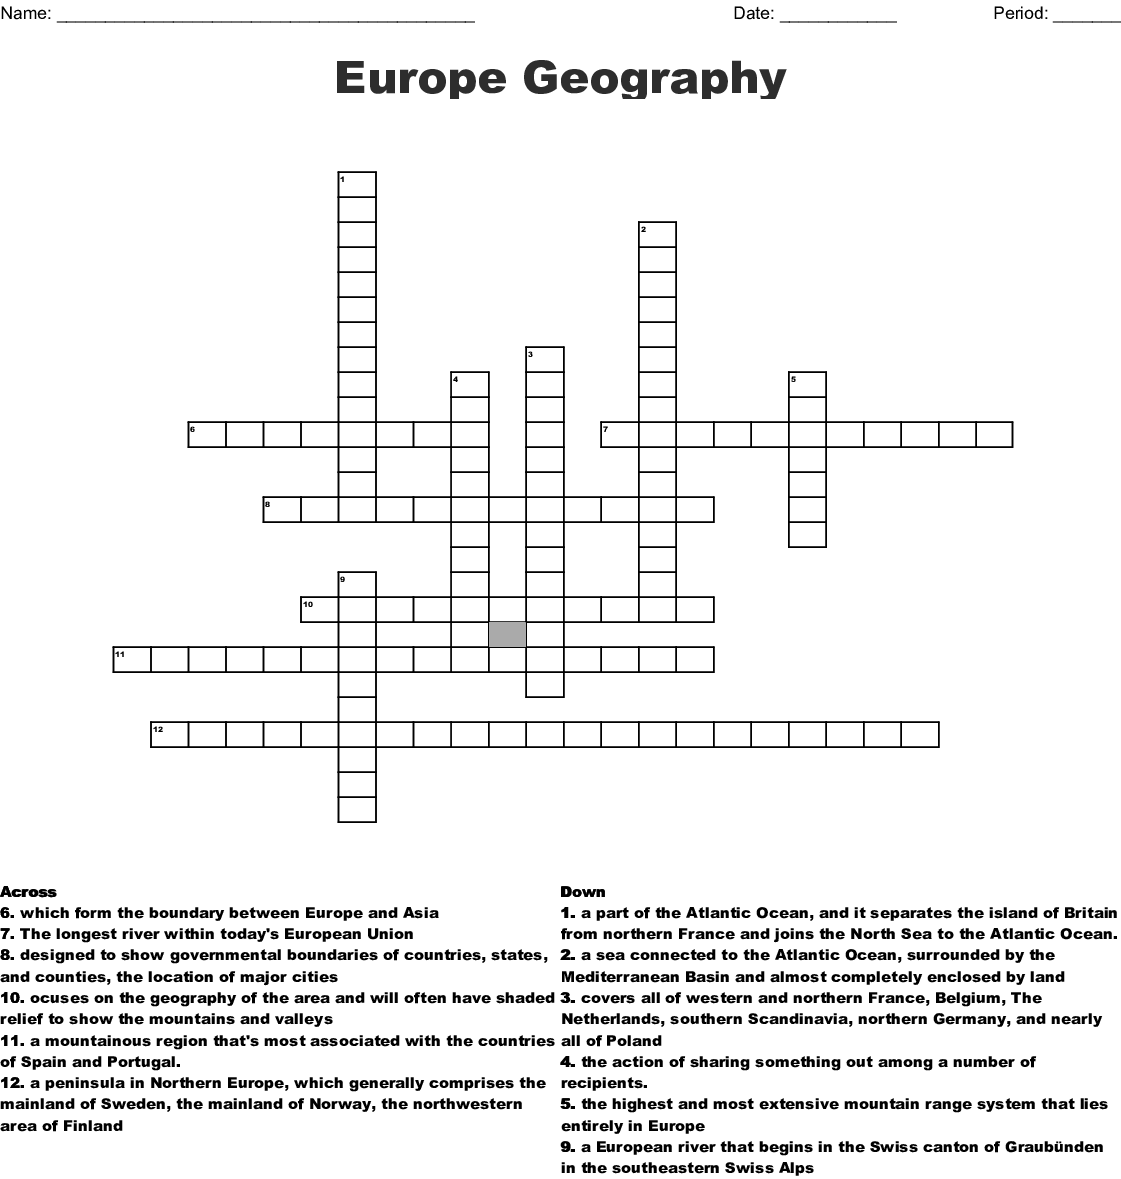 Europe Geography Crossword